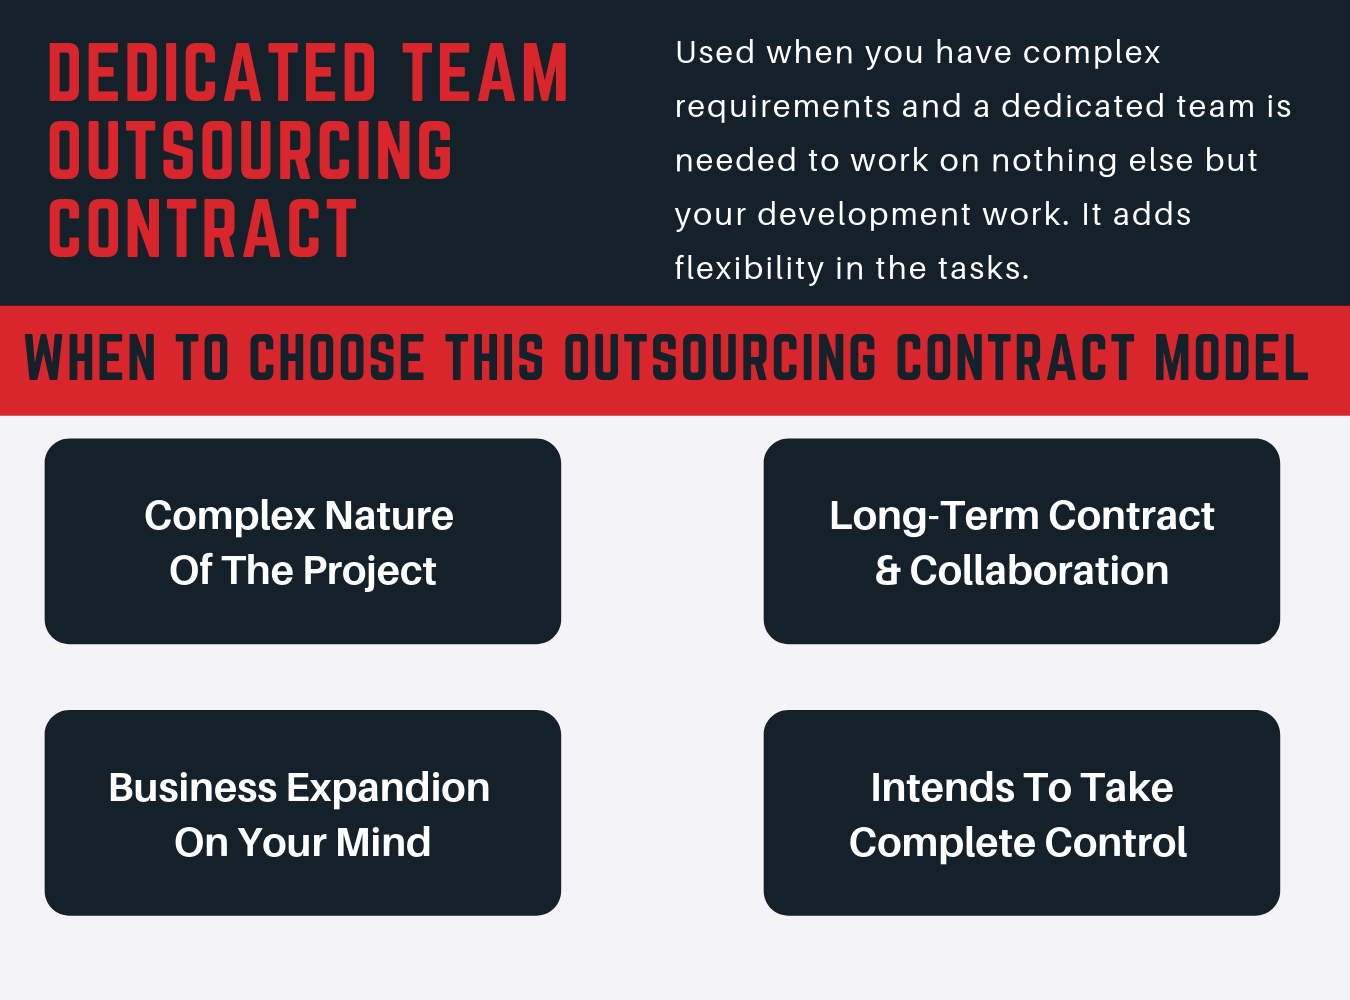 dedicated team outsourcing contract